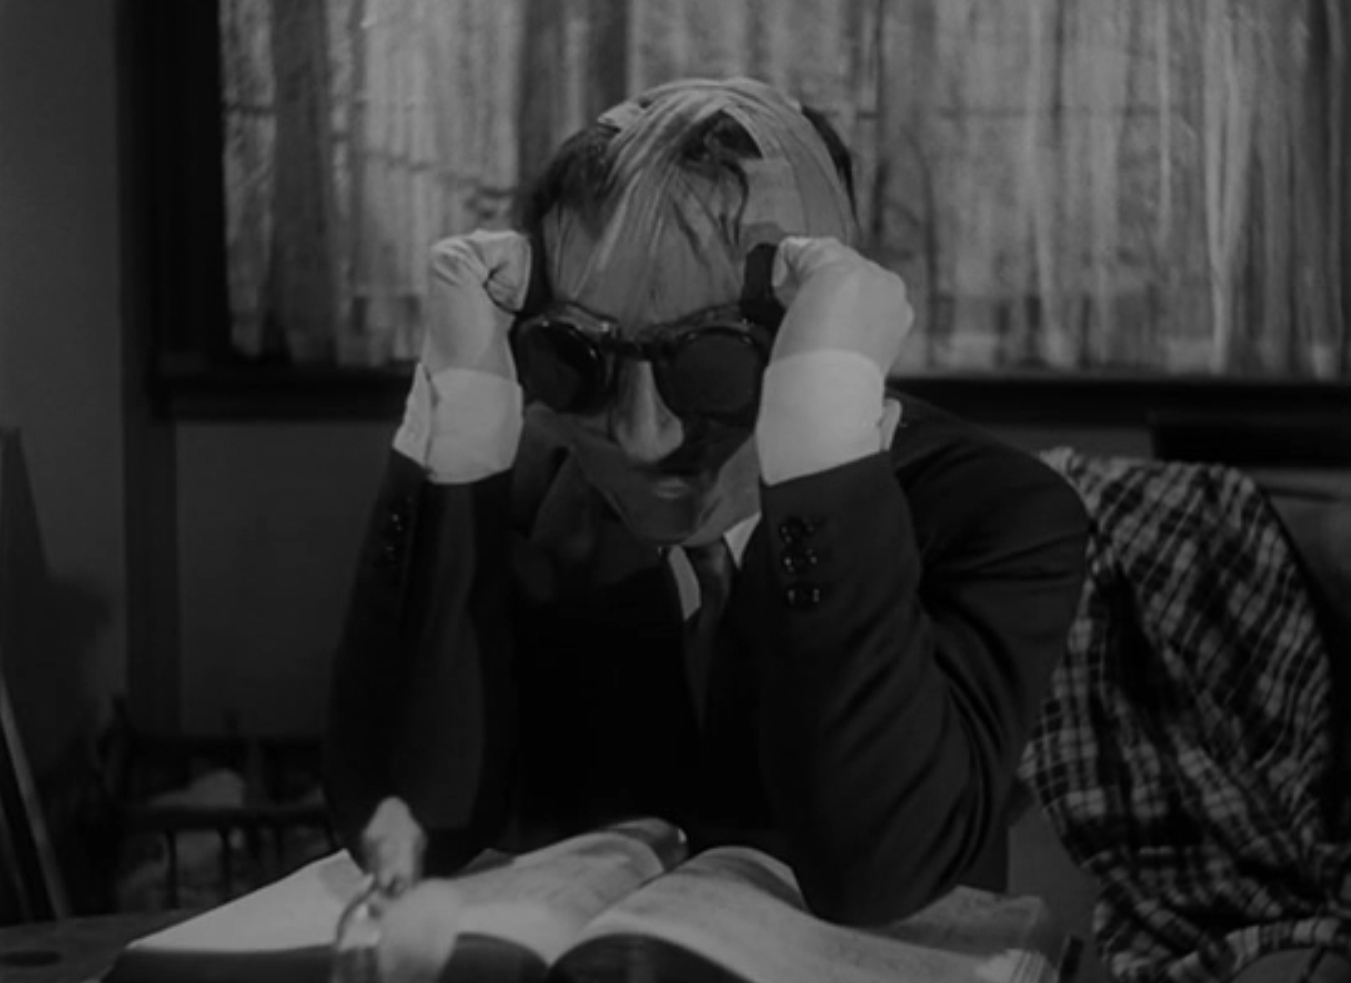 the invisible man 1933 review claude rains and gloria invisibleman9 middot invisibleman7 middot invisibleman16